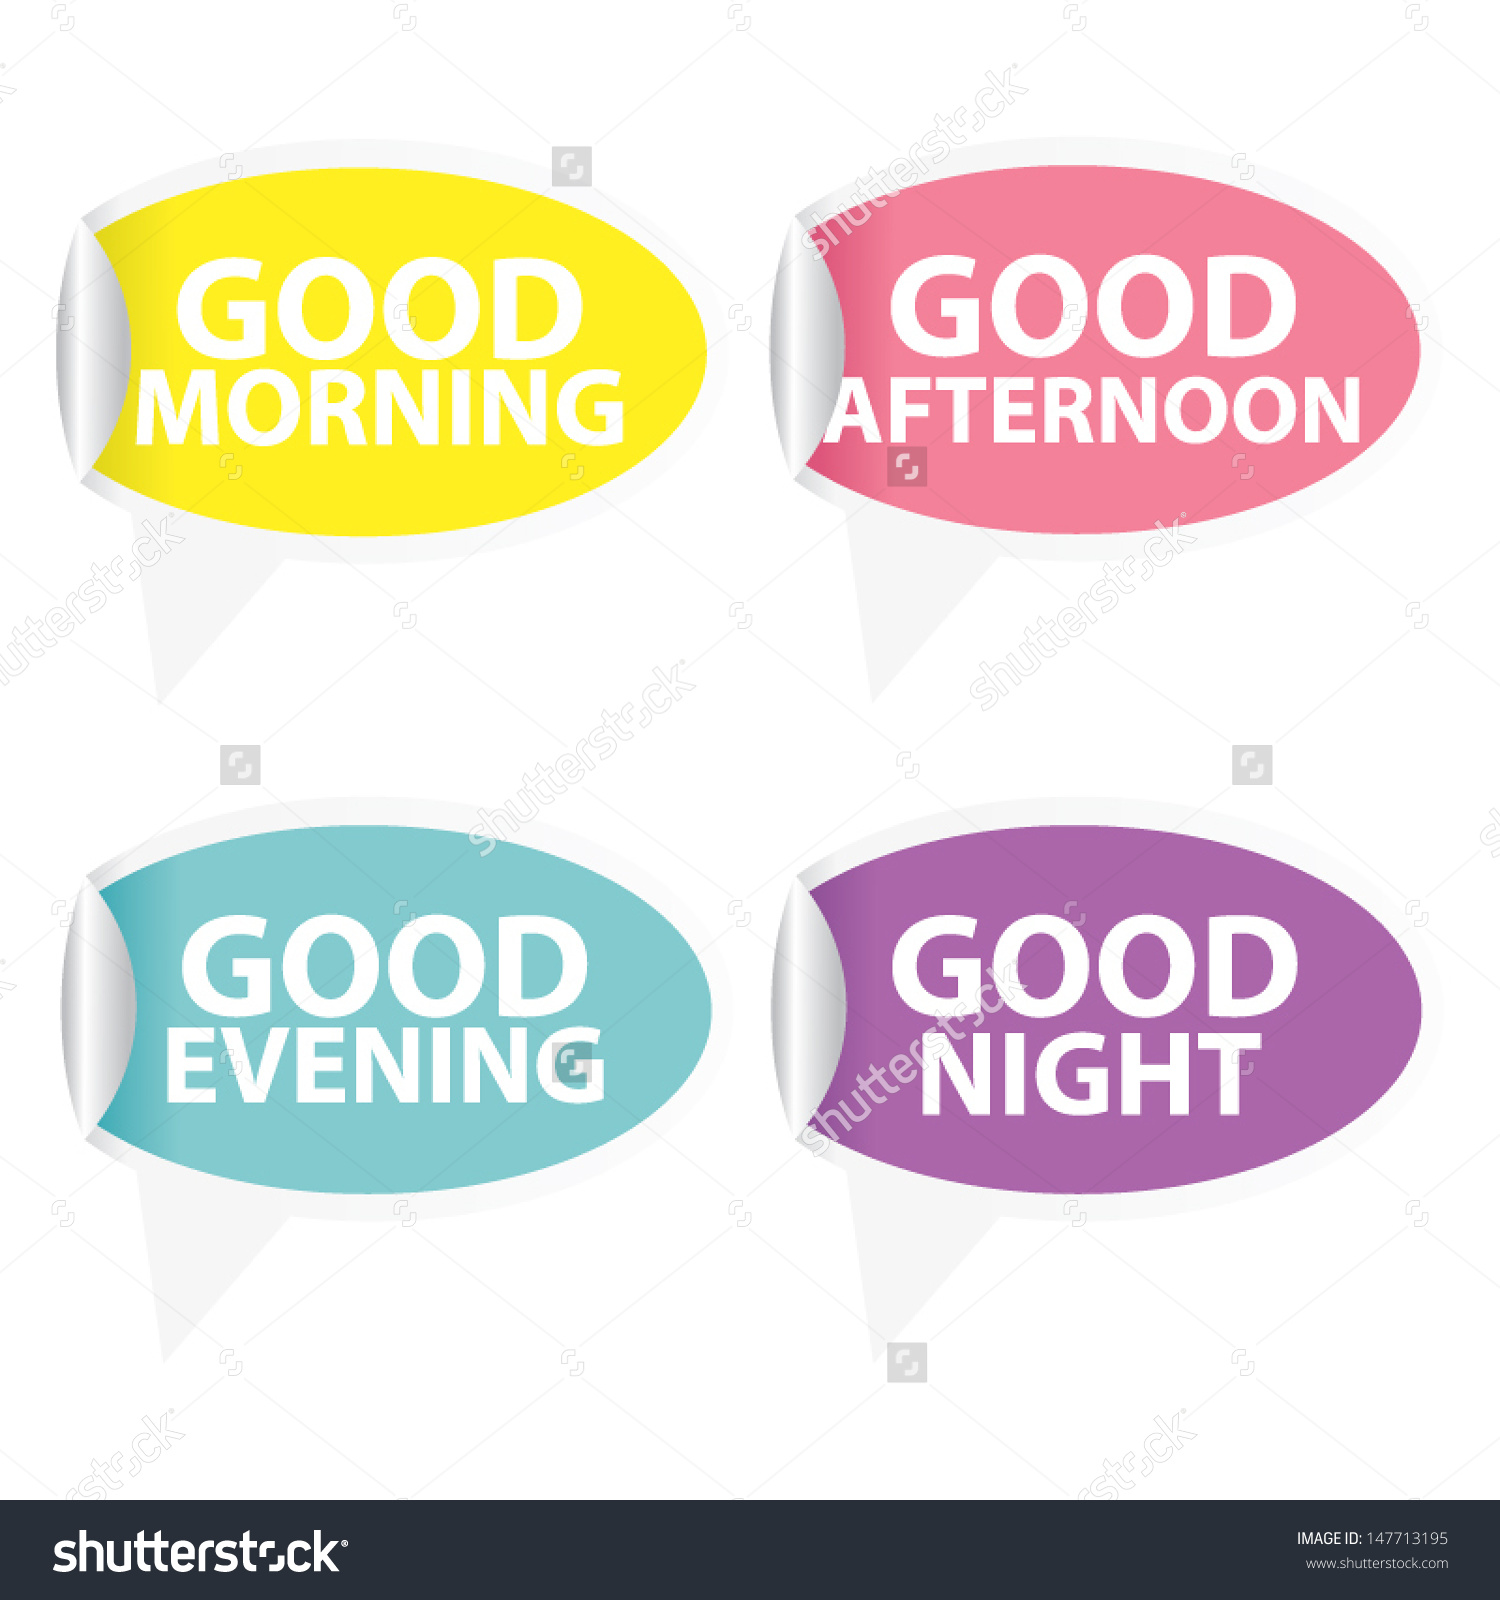 Good morning good afternoon good evening clipart black and white library Good Morning Good Afternoon Good Evening Stock Vector 147713195 ... black and white library